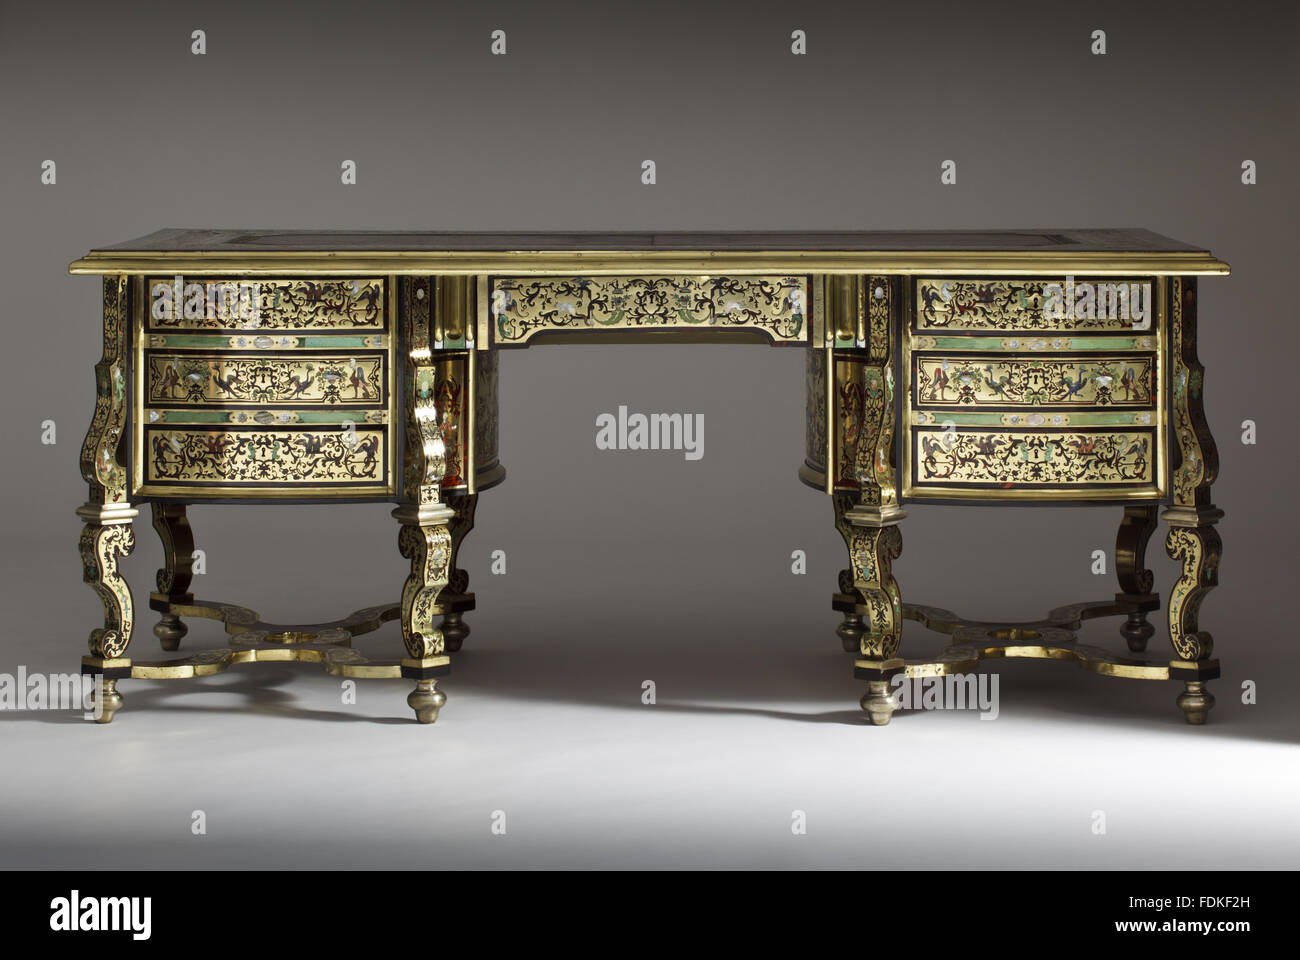 Louis xiv style stock photos and pictures getty images